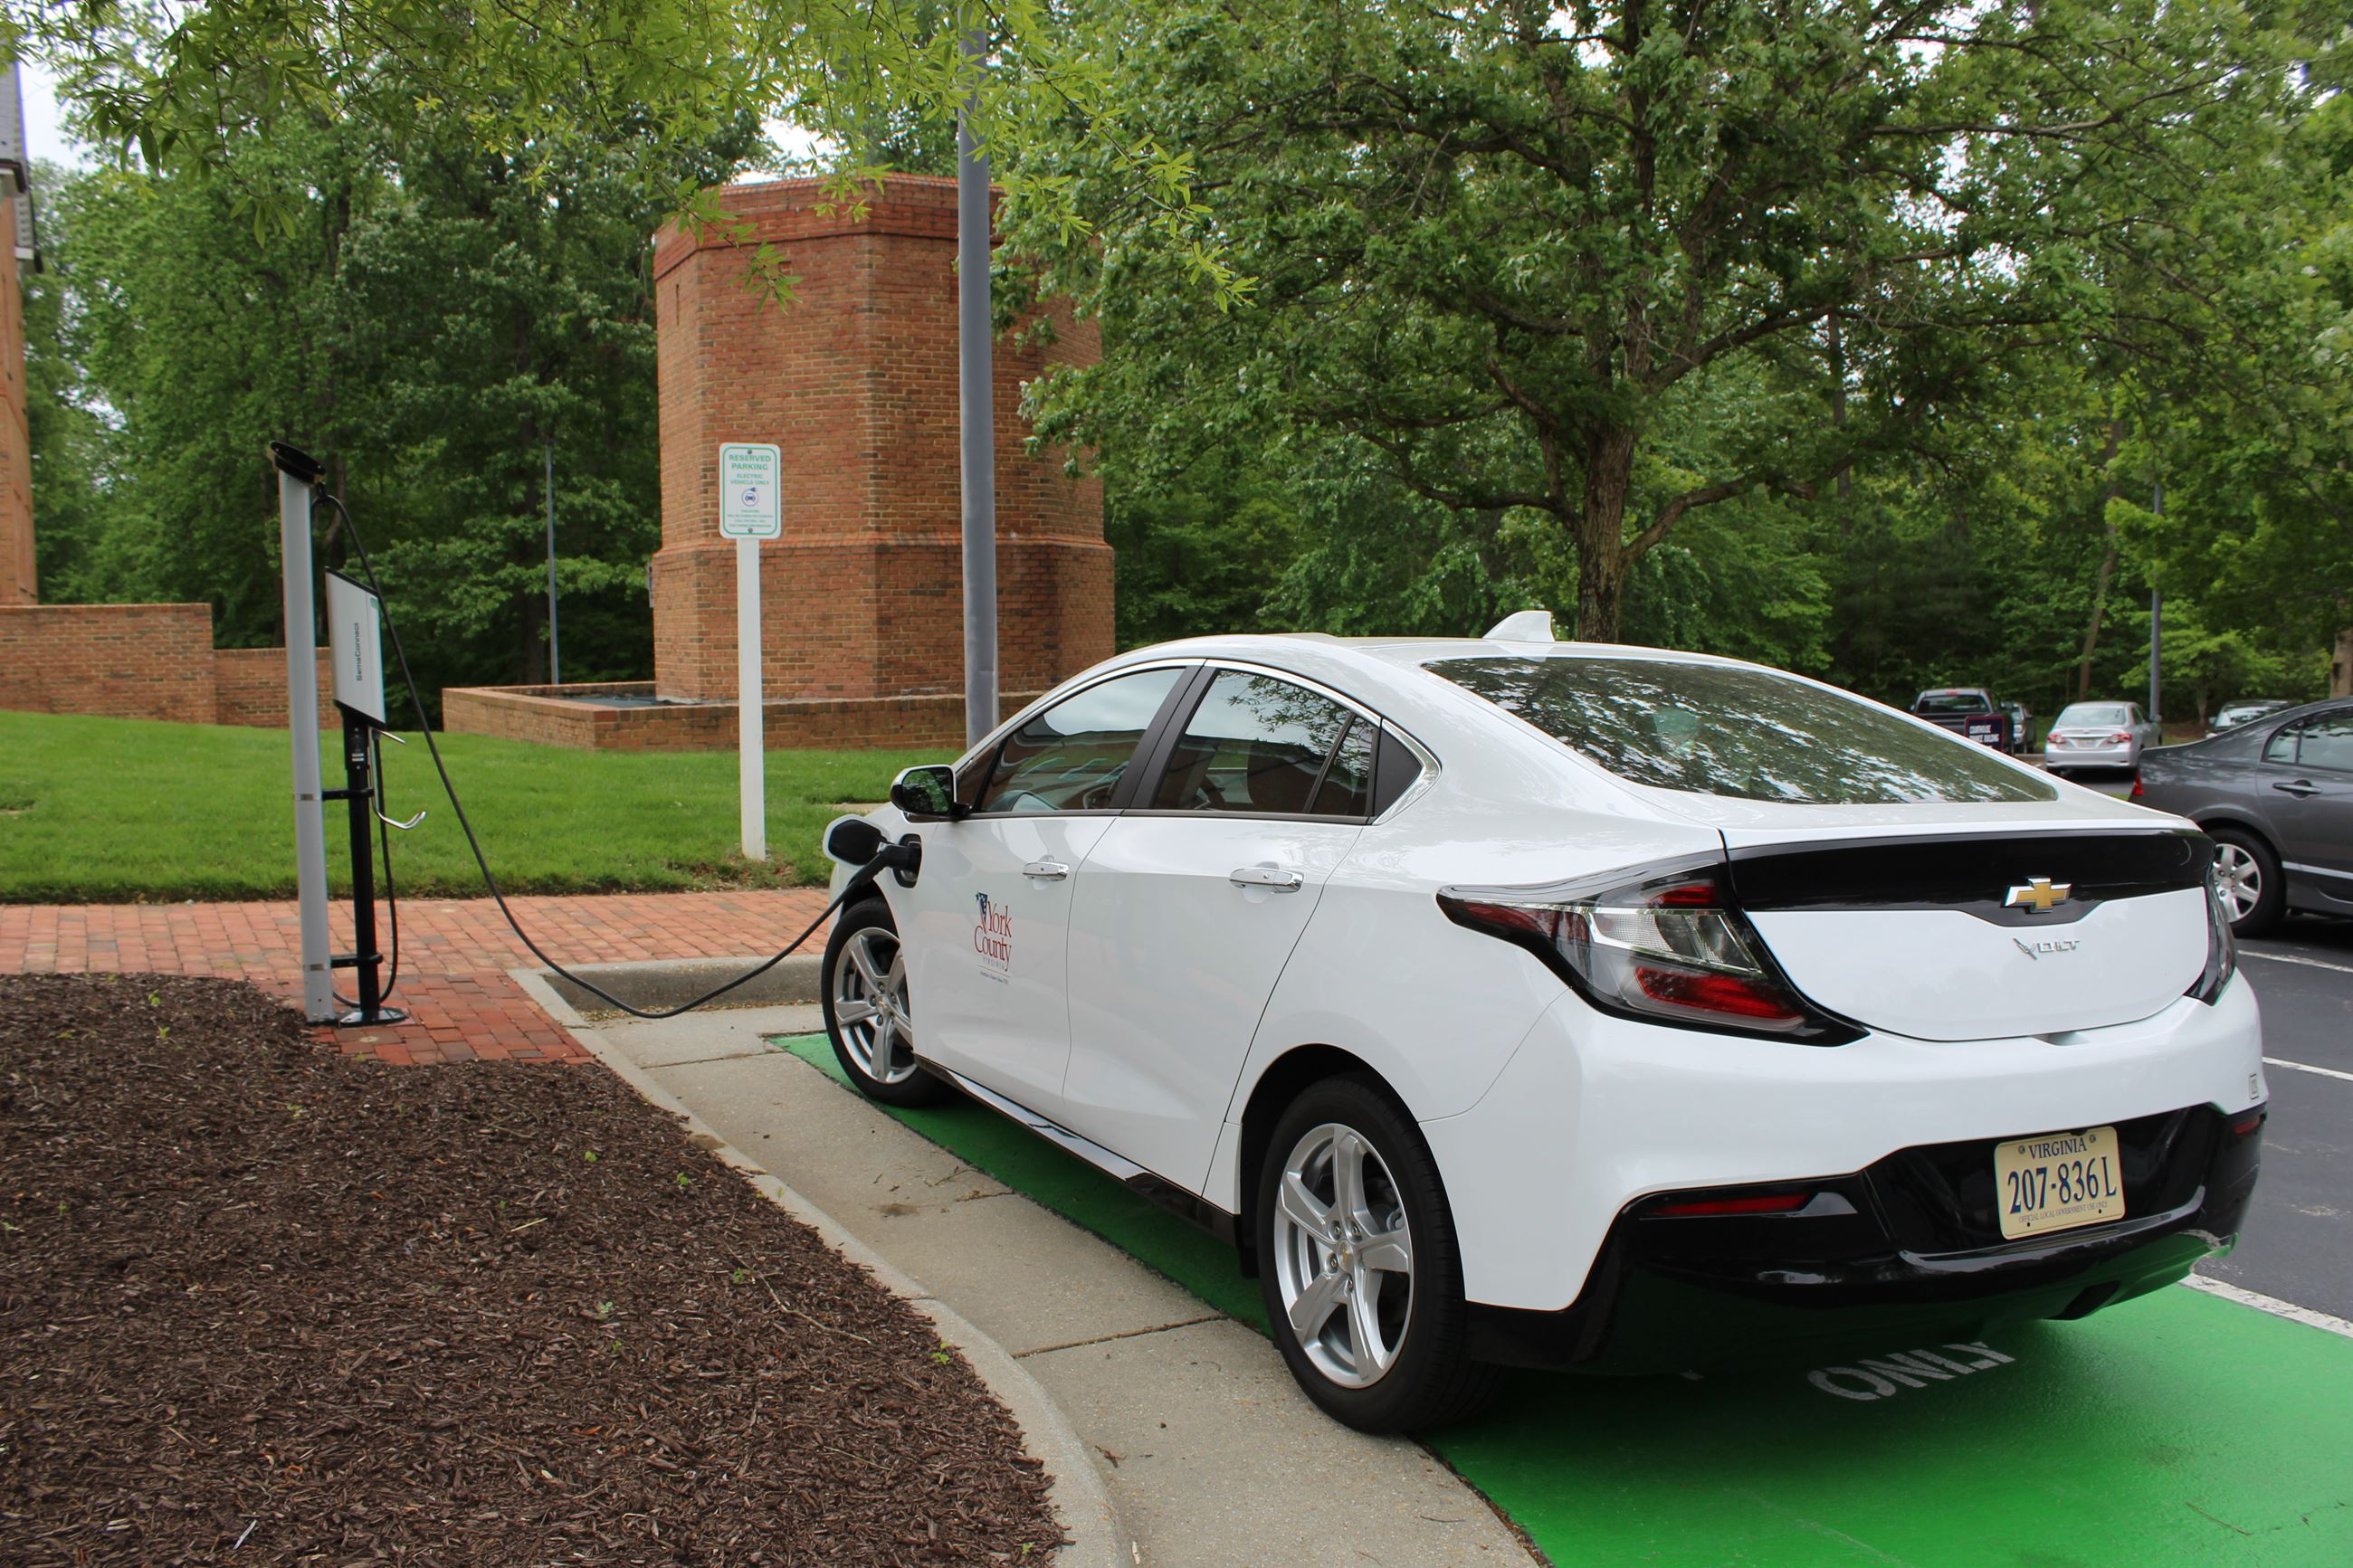 This is an image of a Chevrolet Volt